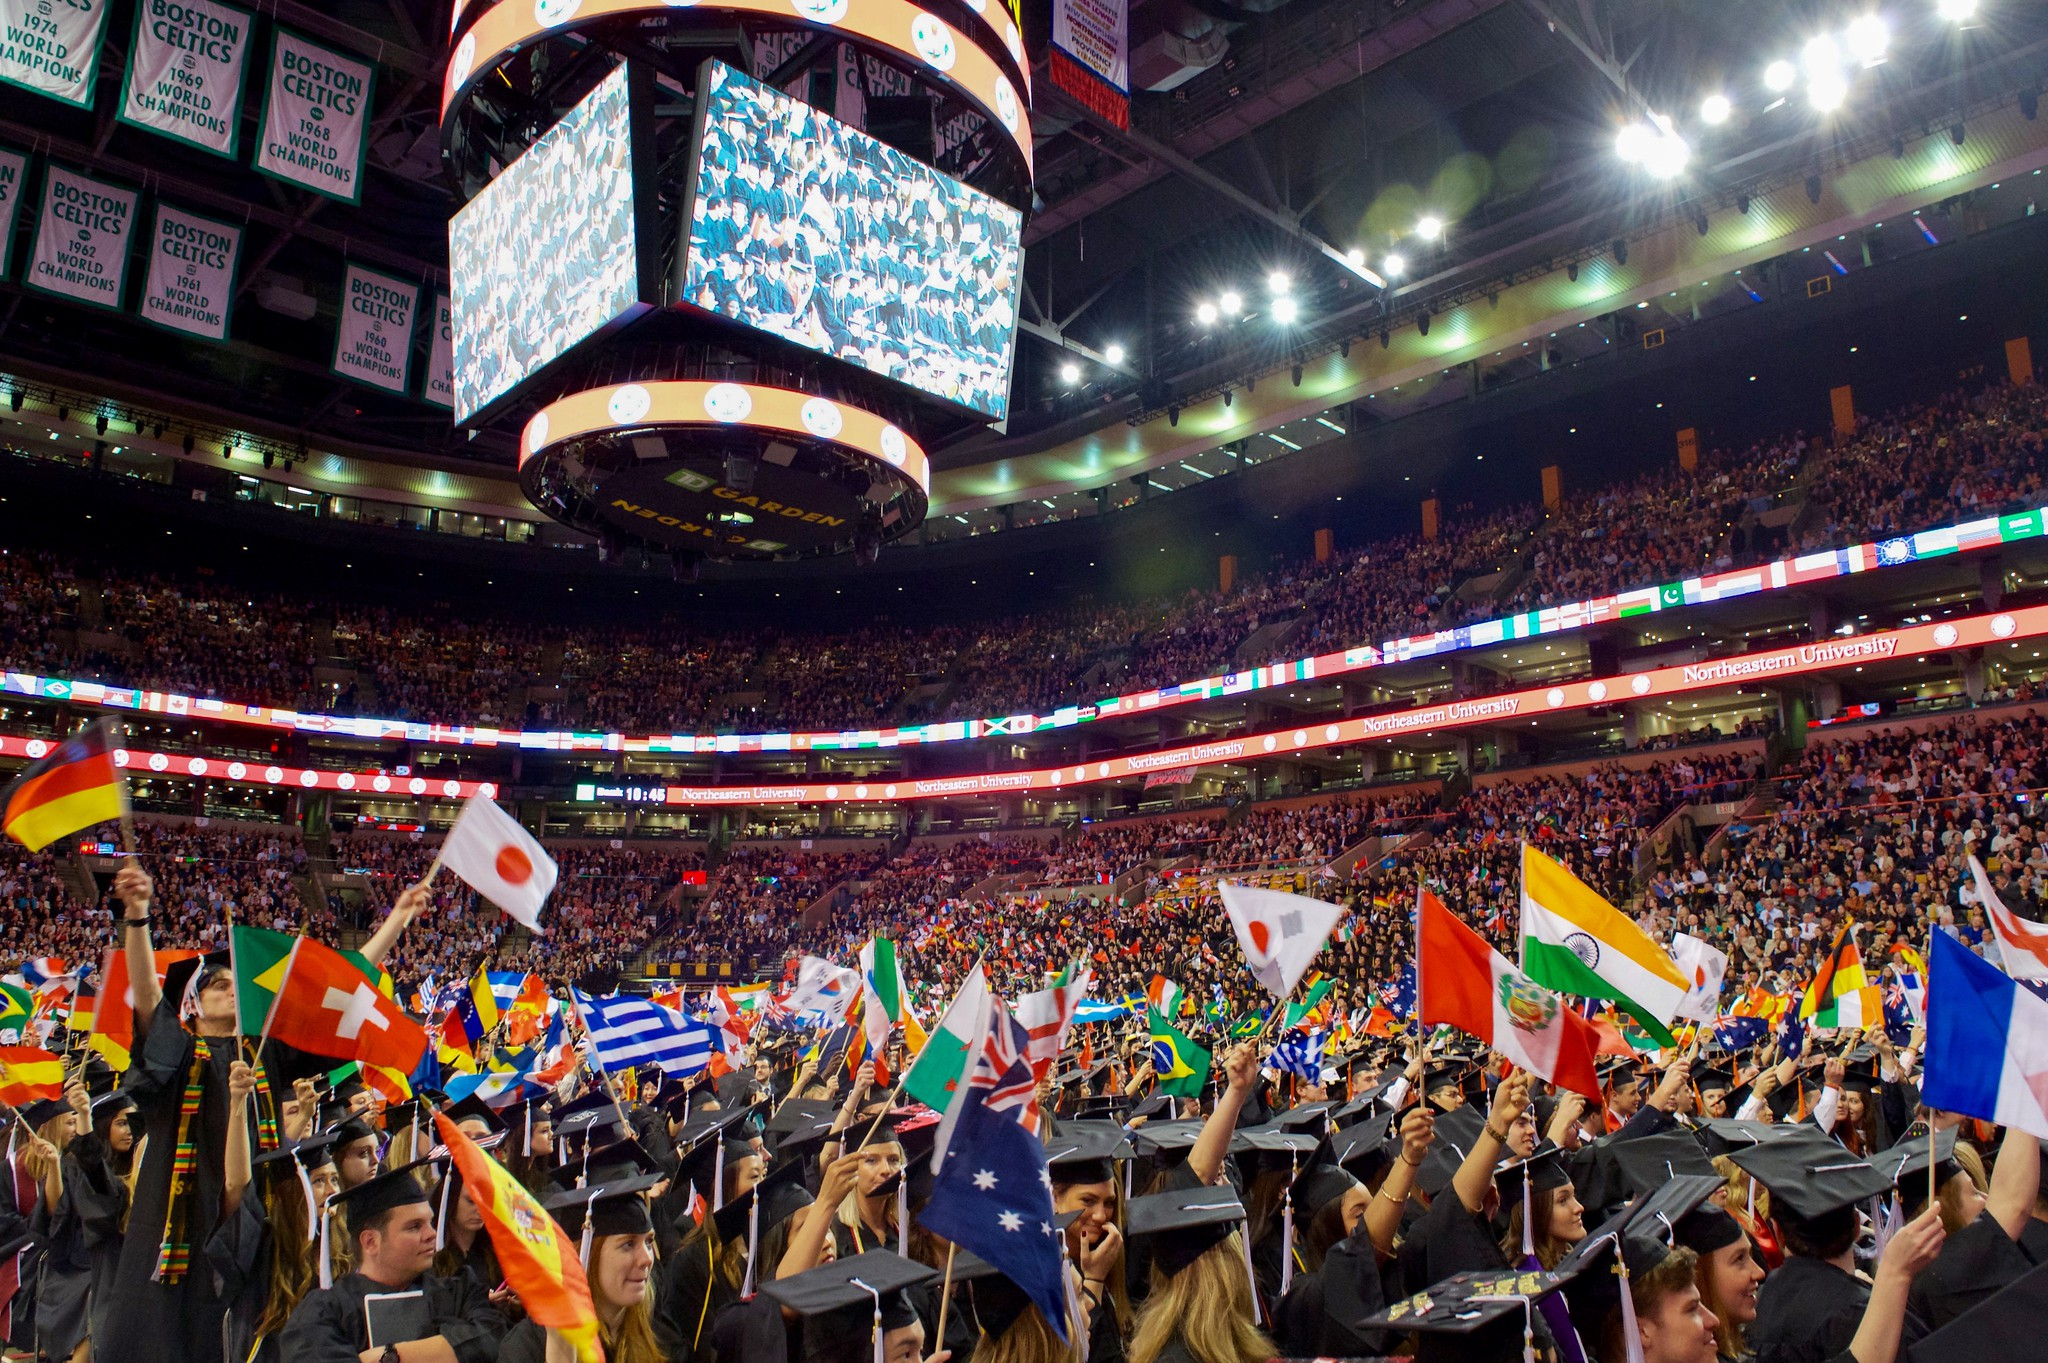 International students wave flags of their origin countries at a commencement address at Northeastern University